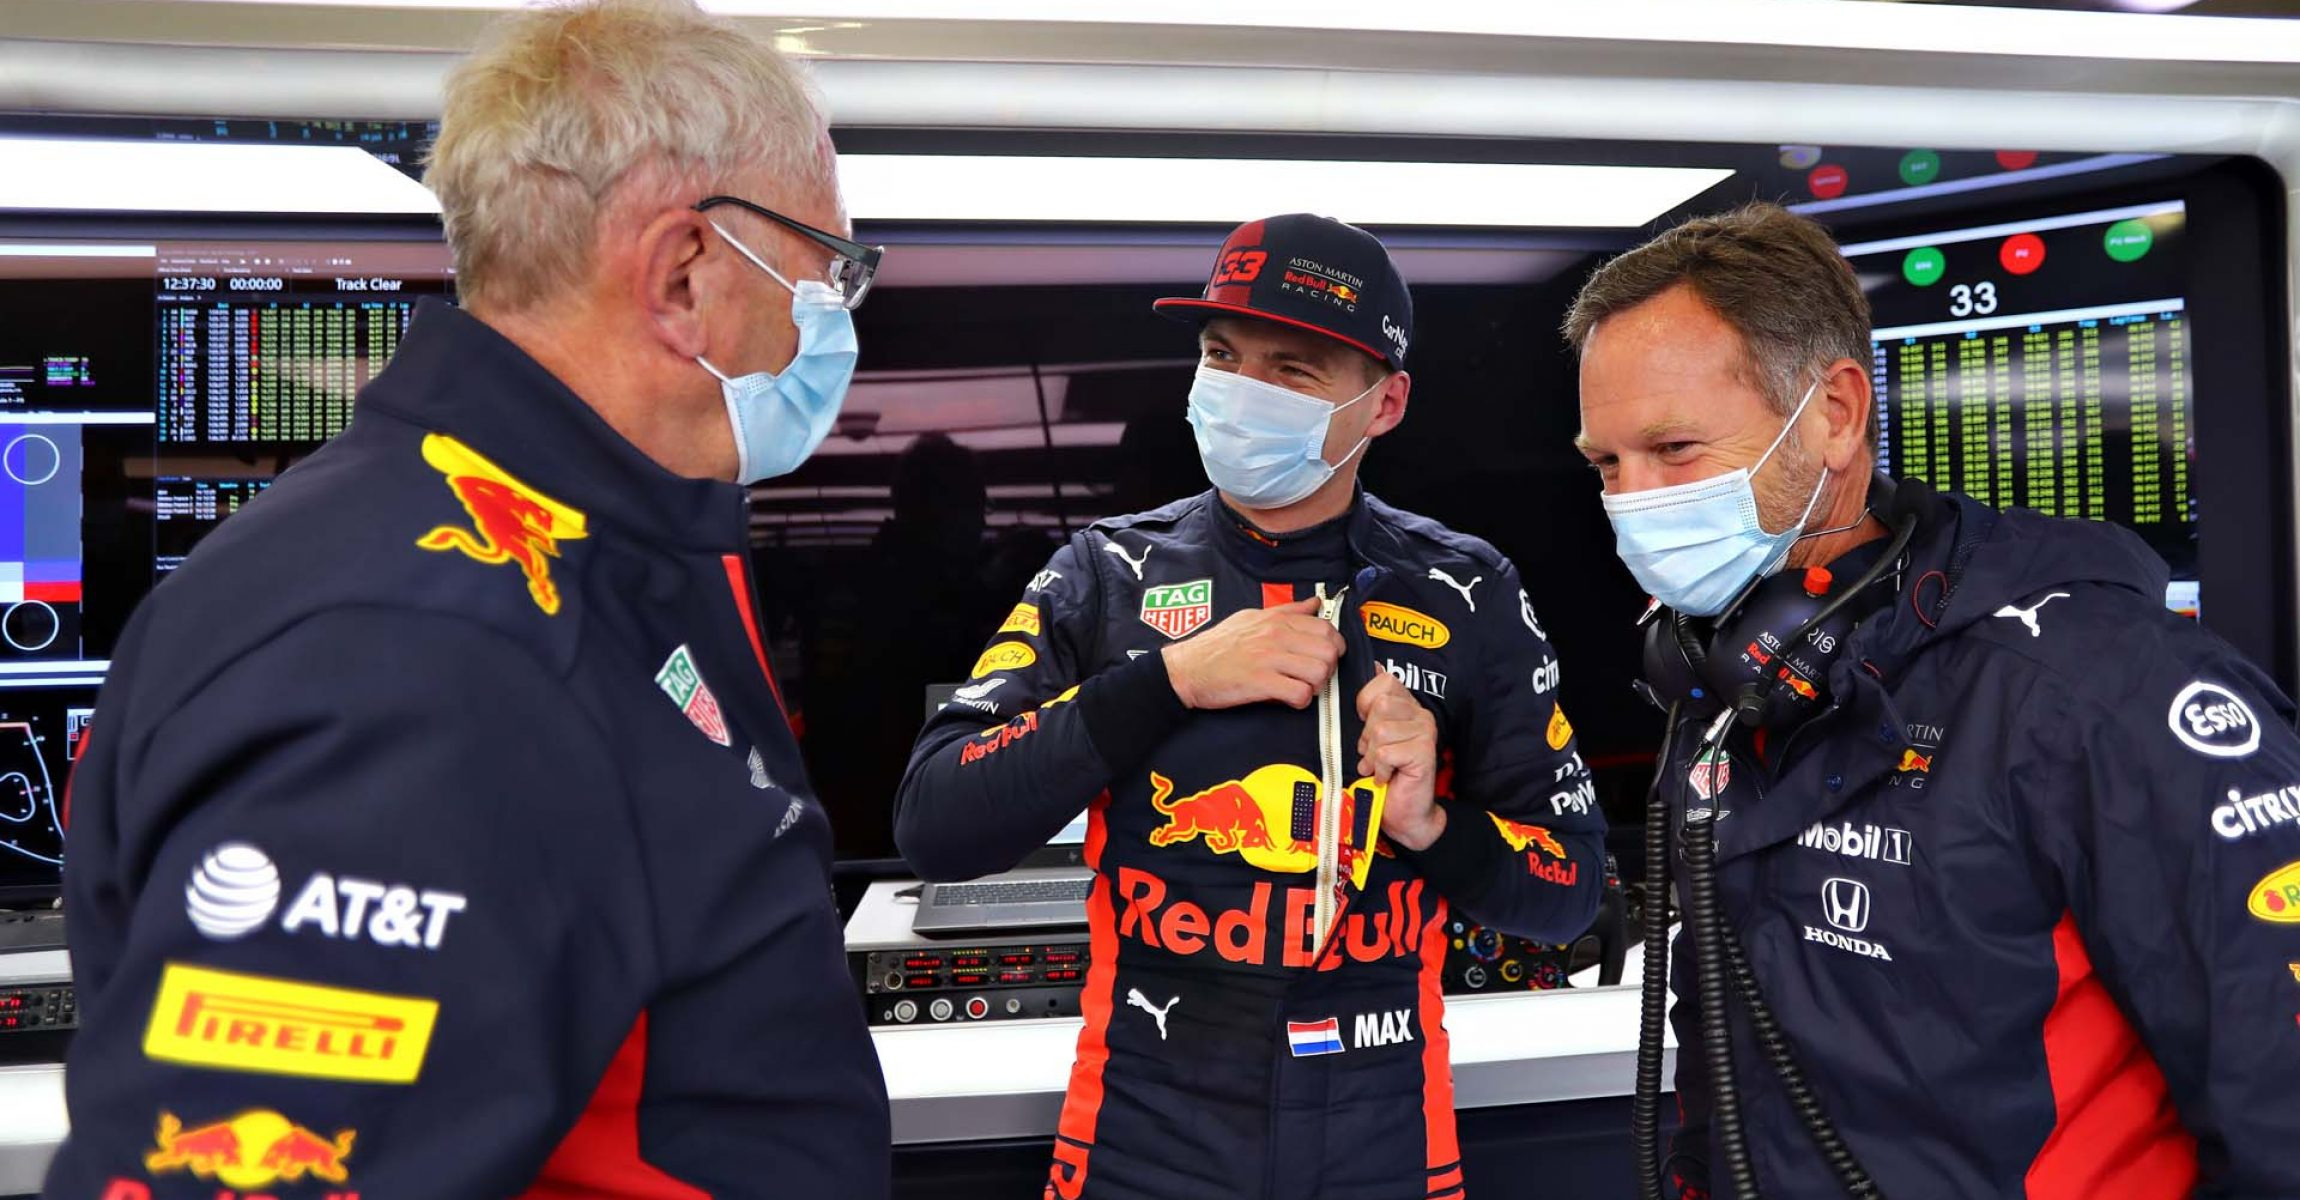 SPIELBERG, AUSTRIA - JULY 03: Max Verstappen of Netherlands and Red Bull Racing, Red Bull Racing Team Principal Christian Horner and Red Bull Racing Team Consultant Dr Helmut Marko talk in the garage during practice for the F1 Grand Prix of Austria at Red Bull Ring on July 03, 2020 in Spielberg, Austria. (Photo by Getty Images/Getty Images) // Getty Images / Red Bull Content Pool // AP-24H29JPFD2111 // Usage for editorial use only //